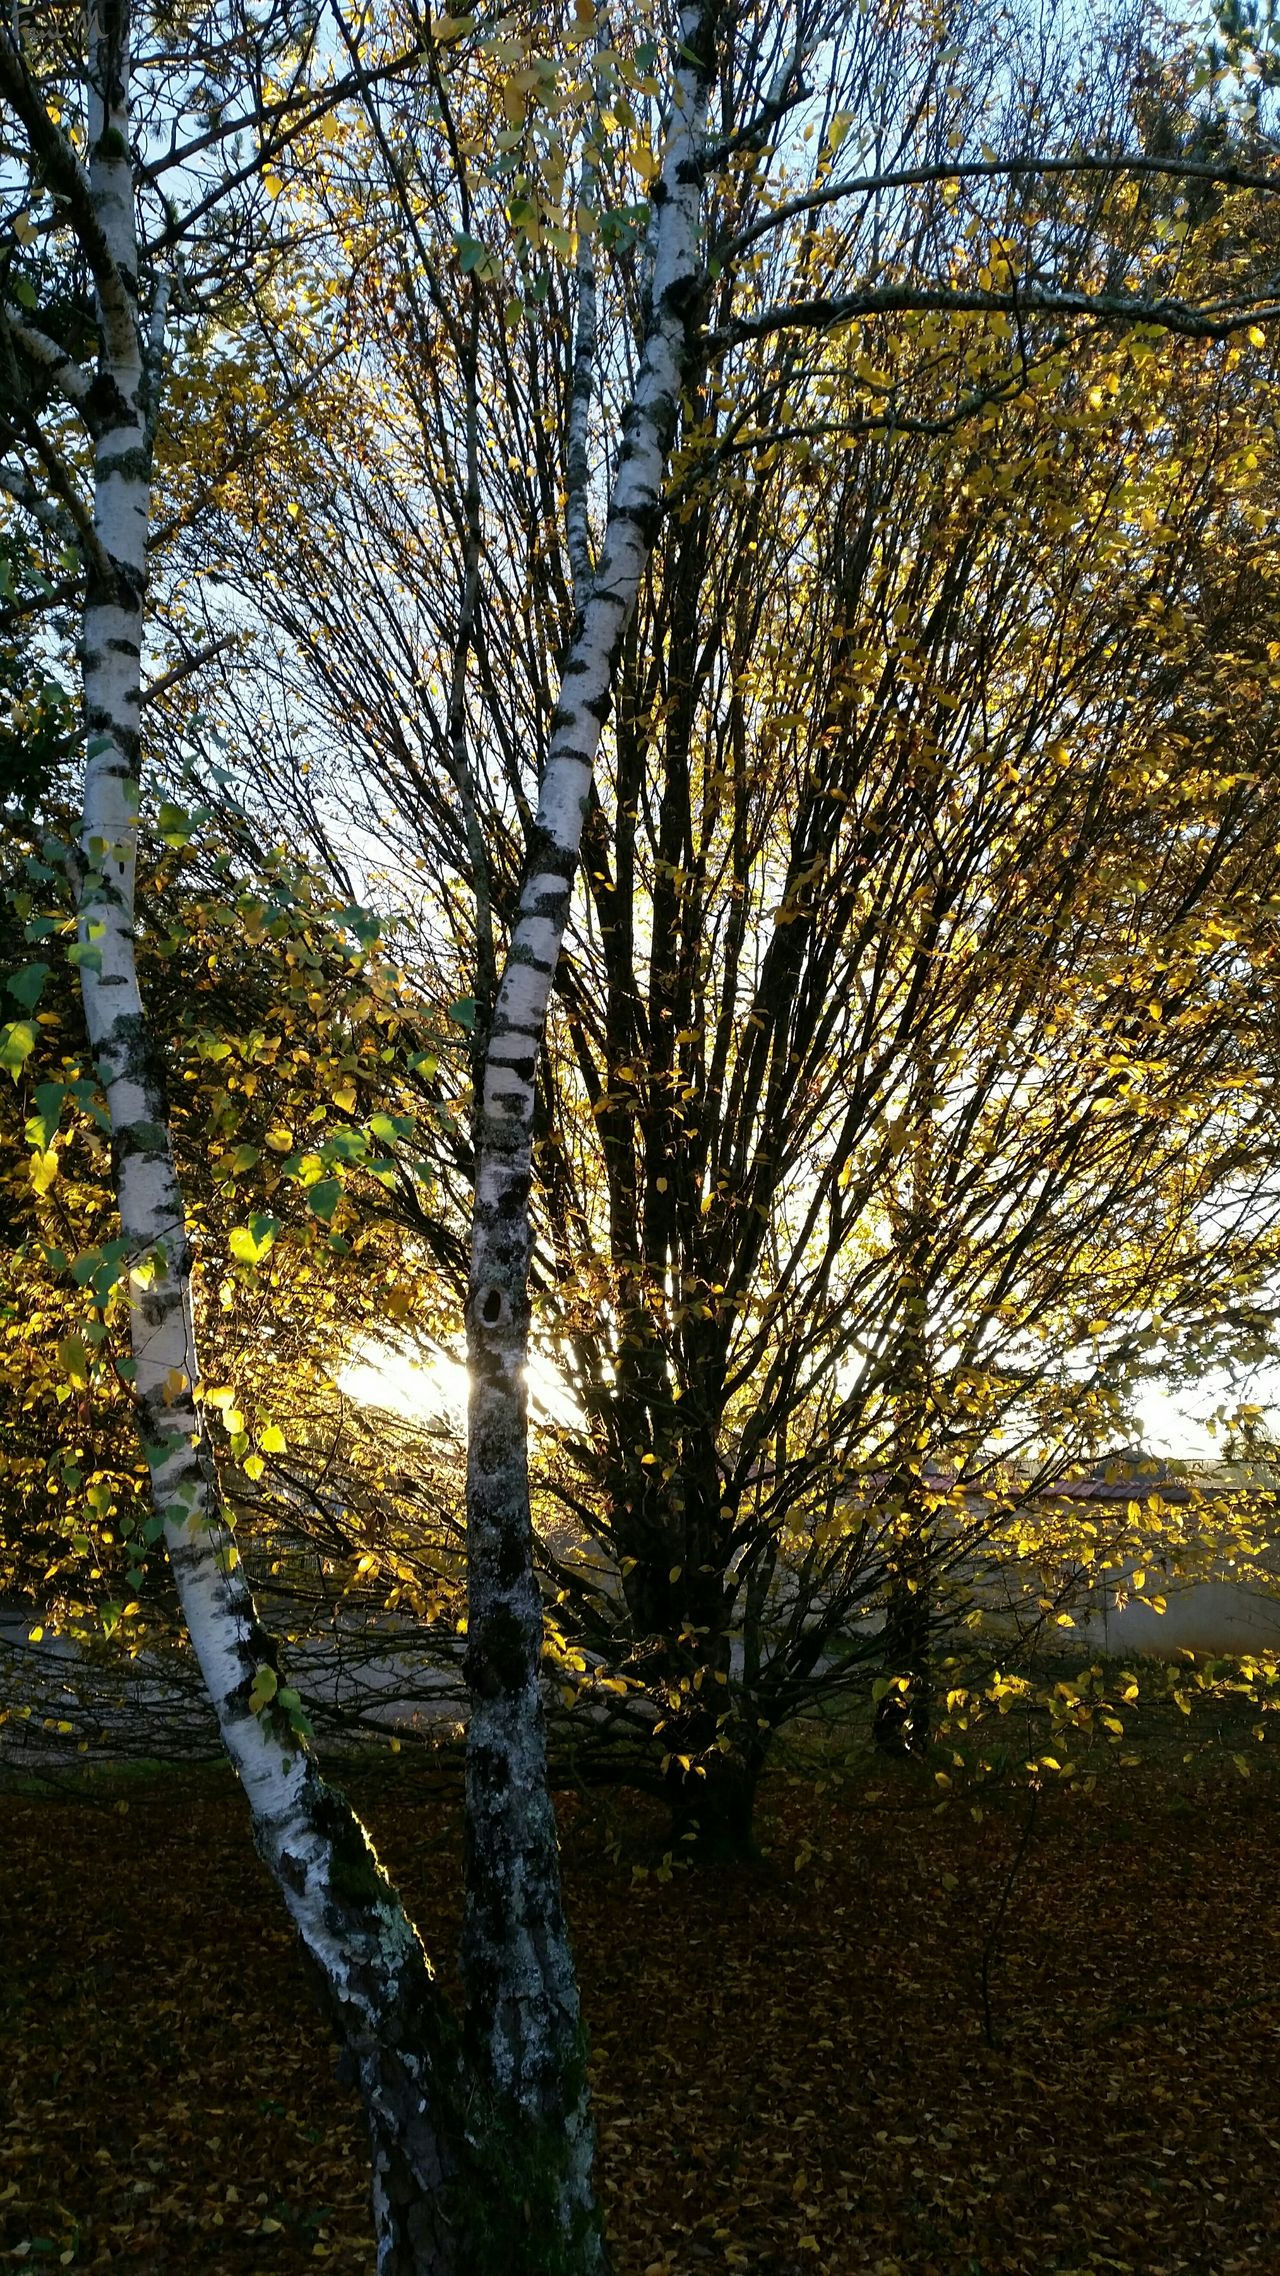 Tree Growth Beauty In Nature Bourges, France TreePorn Sky Autumn Colours Landscape Yellow Leaves Taking Photos EyeEm Nature Lover Autumn 2016 Autumn Sunlight Branches